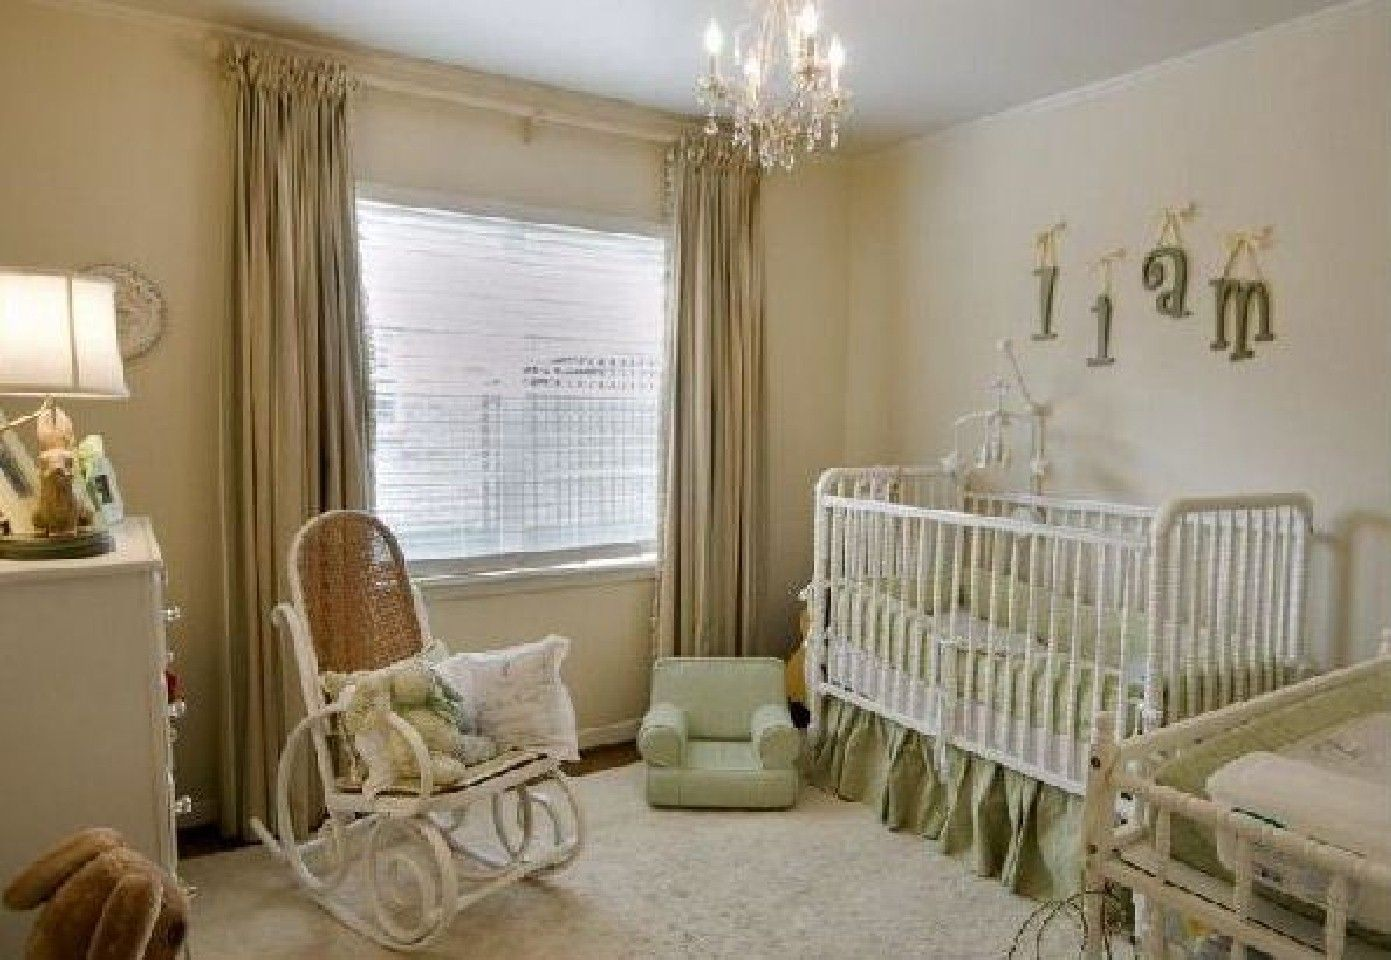 Baby Rooms This Nursery Covers All The Basics A Crib Chest For